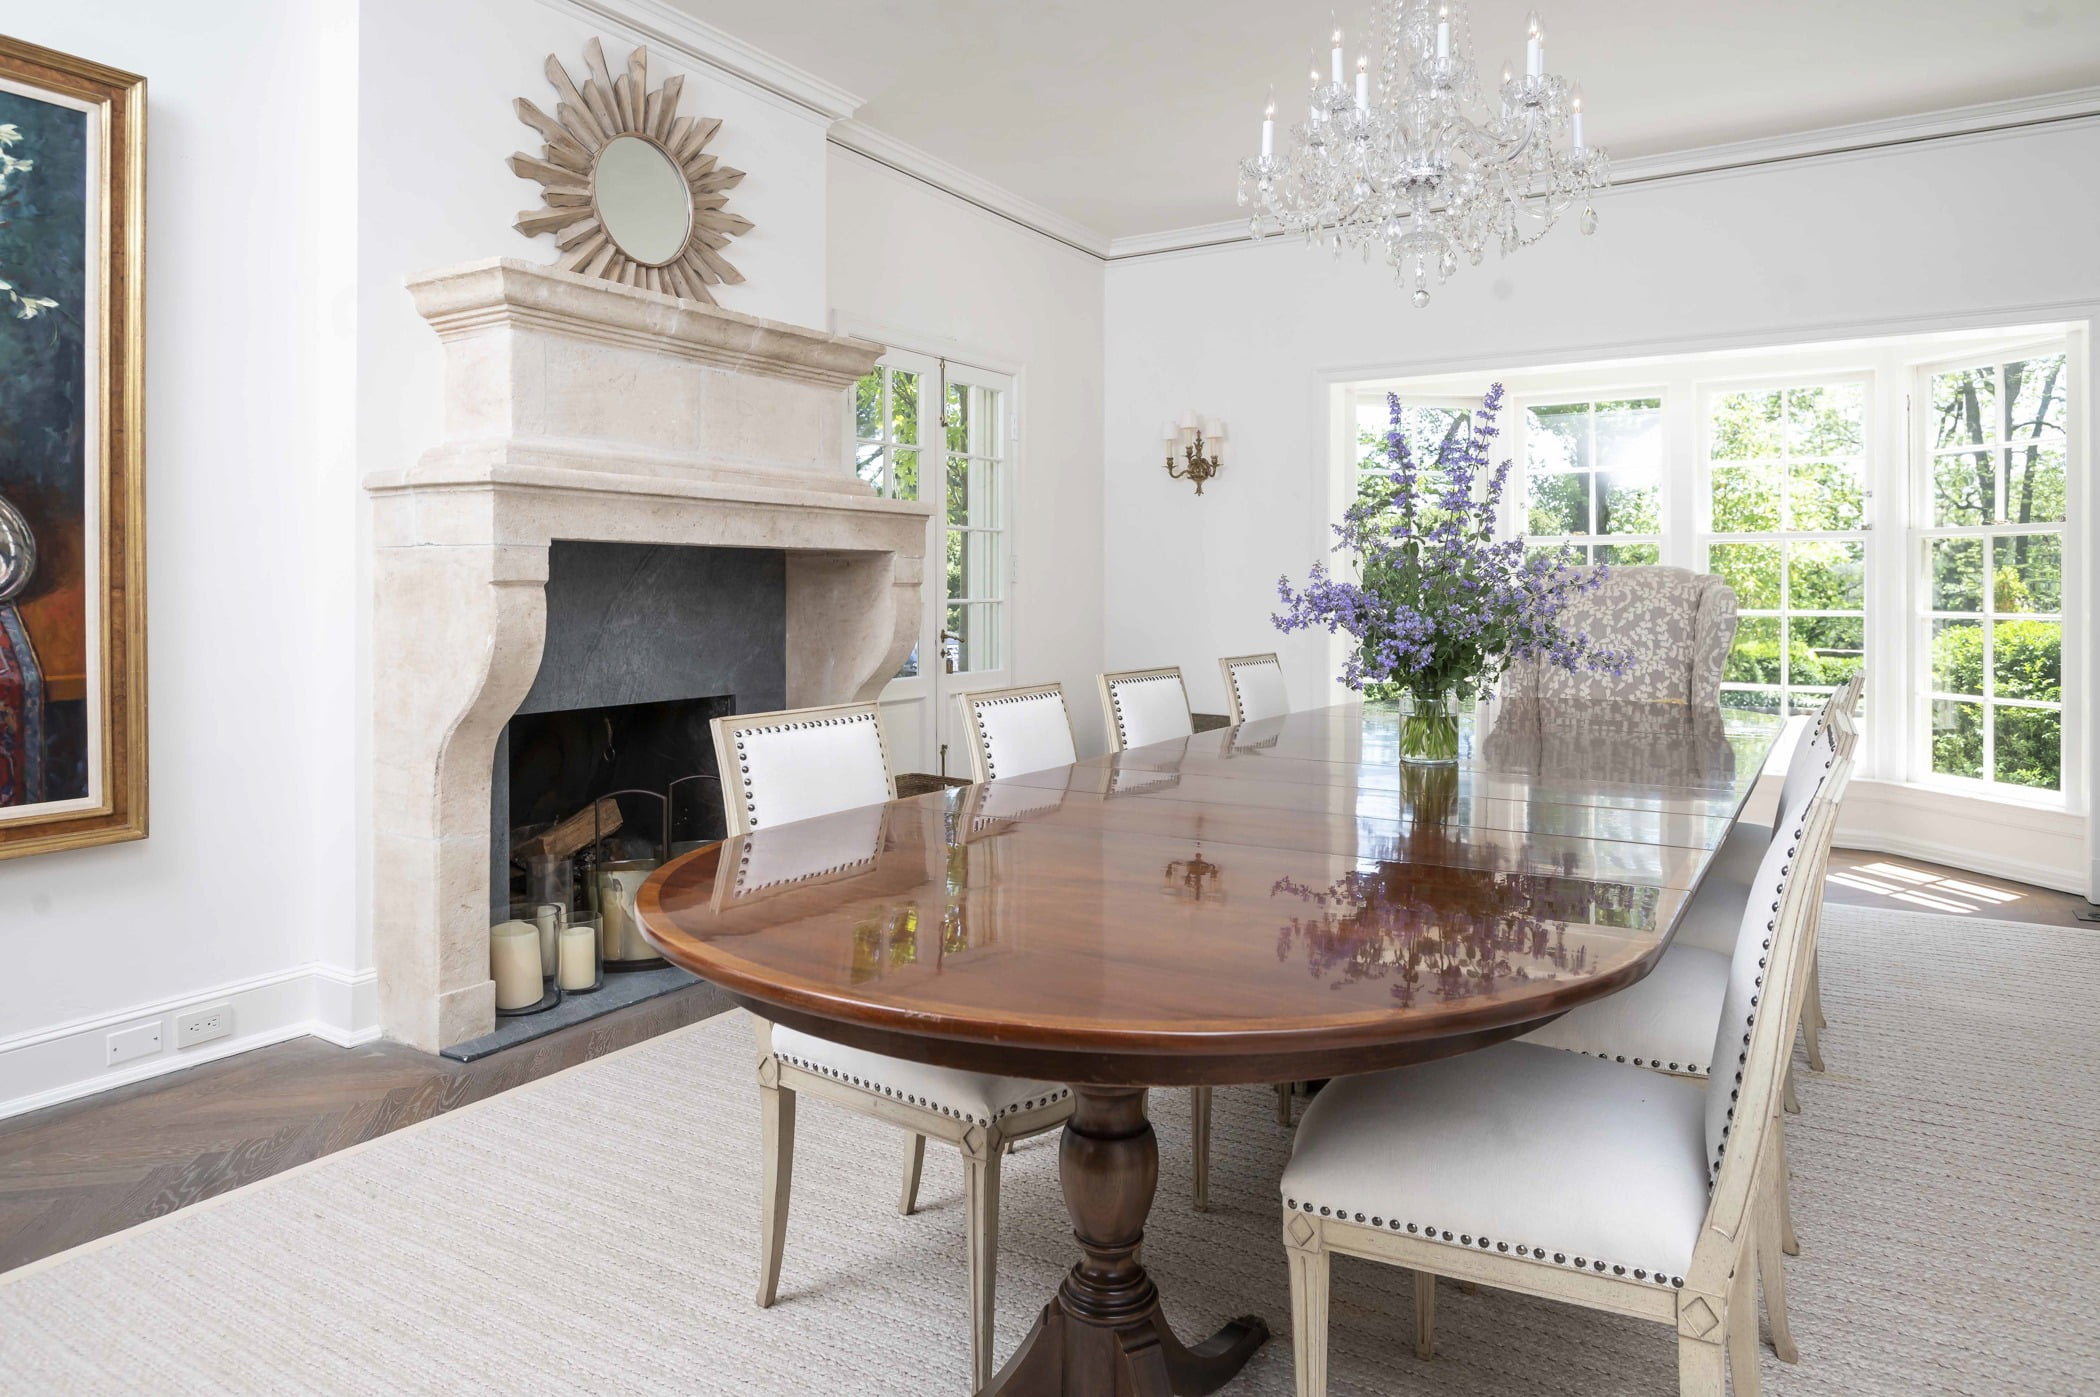 Traditional dining room with decorative stone fireplace, wood table, crystal chandelier and decorative cream color chairs